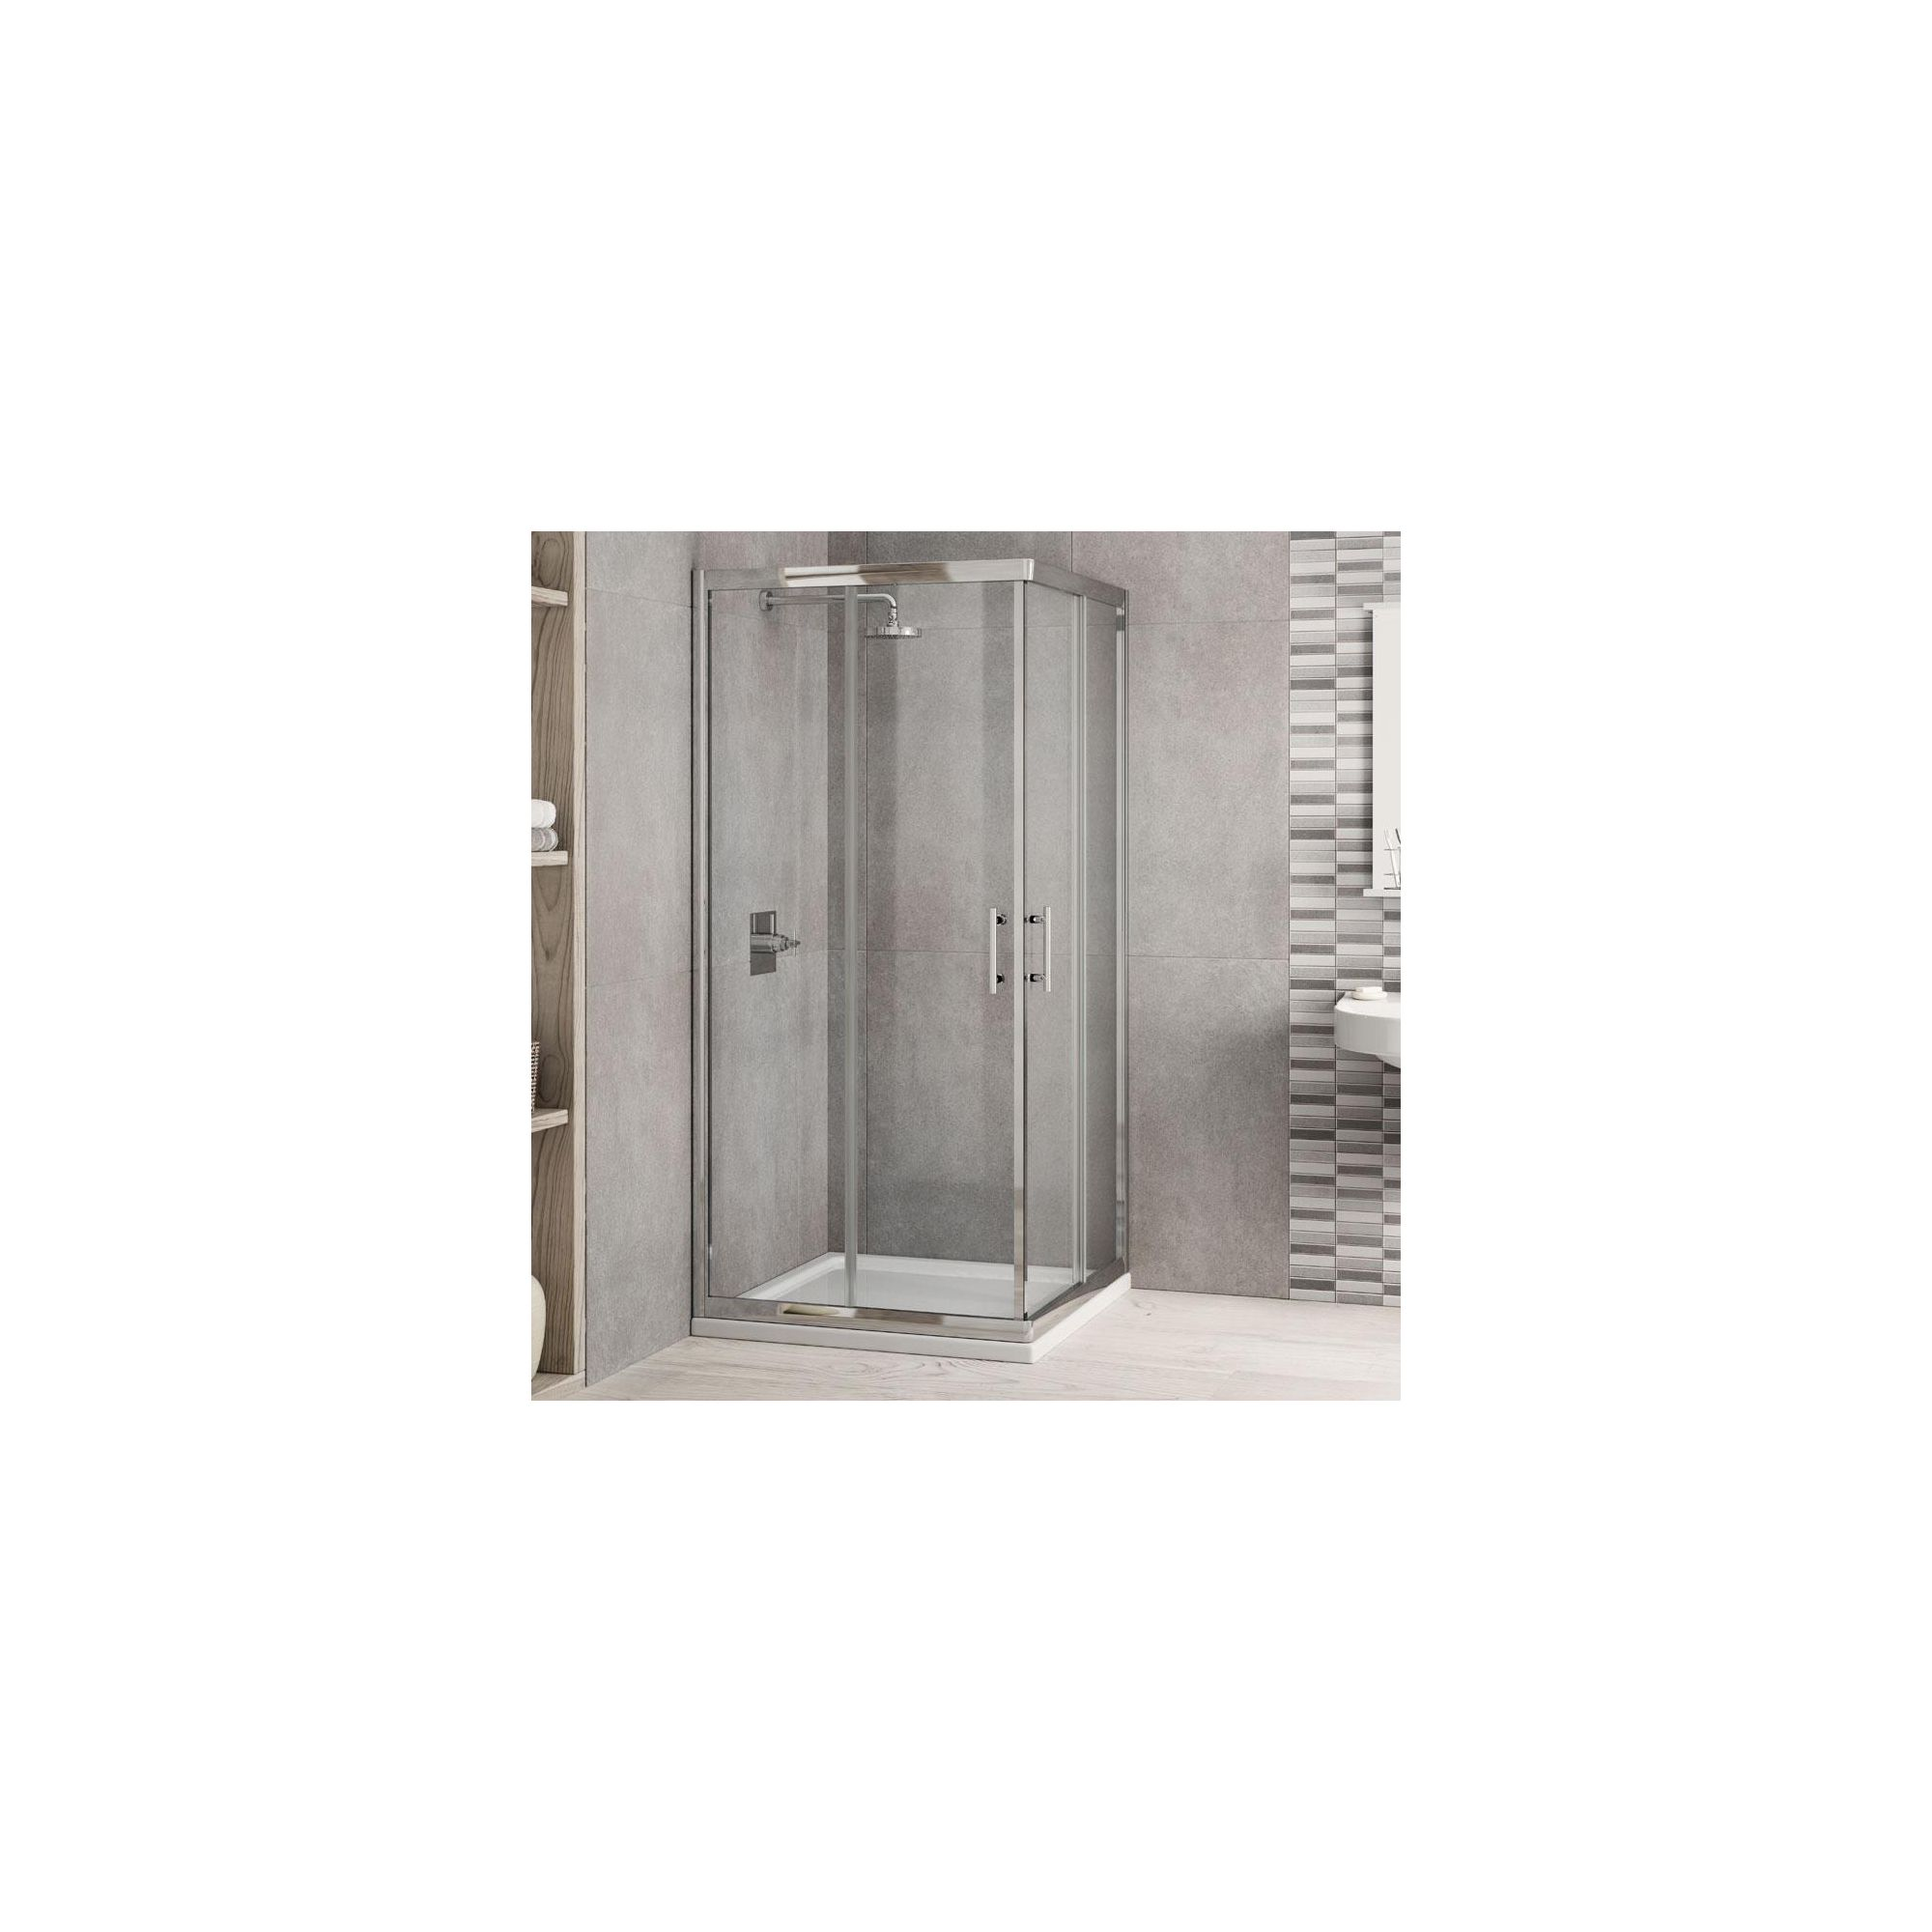 Elemis Inspire Corner Entry Shower Enclosure, 800mm x 800mm, 6mm Glass, Low Profile Tray at Tesco Direct